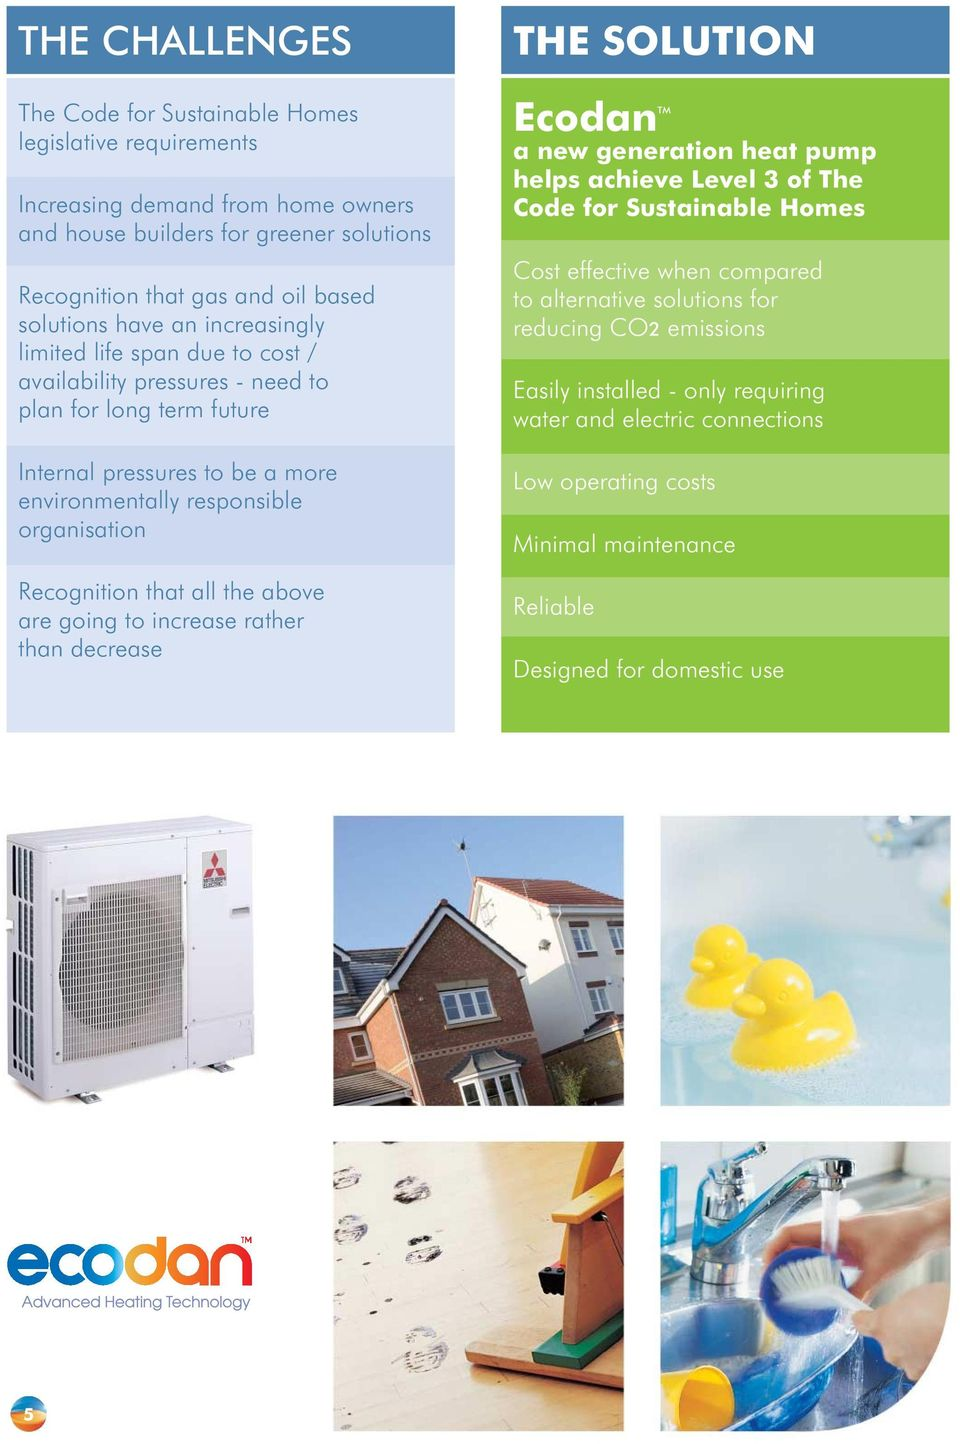 Recognition that all the above are going to increase rather than decrease THE SOLUTION TM Ecodan a new generation heat pump helps achieve Level 3 of The Code for Sustainable Homes Cost effective